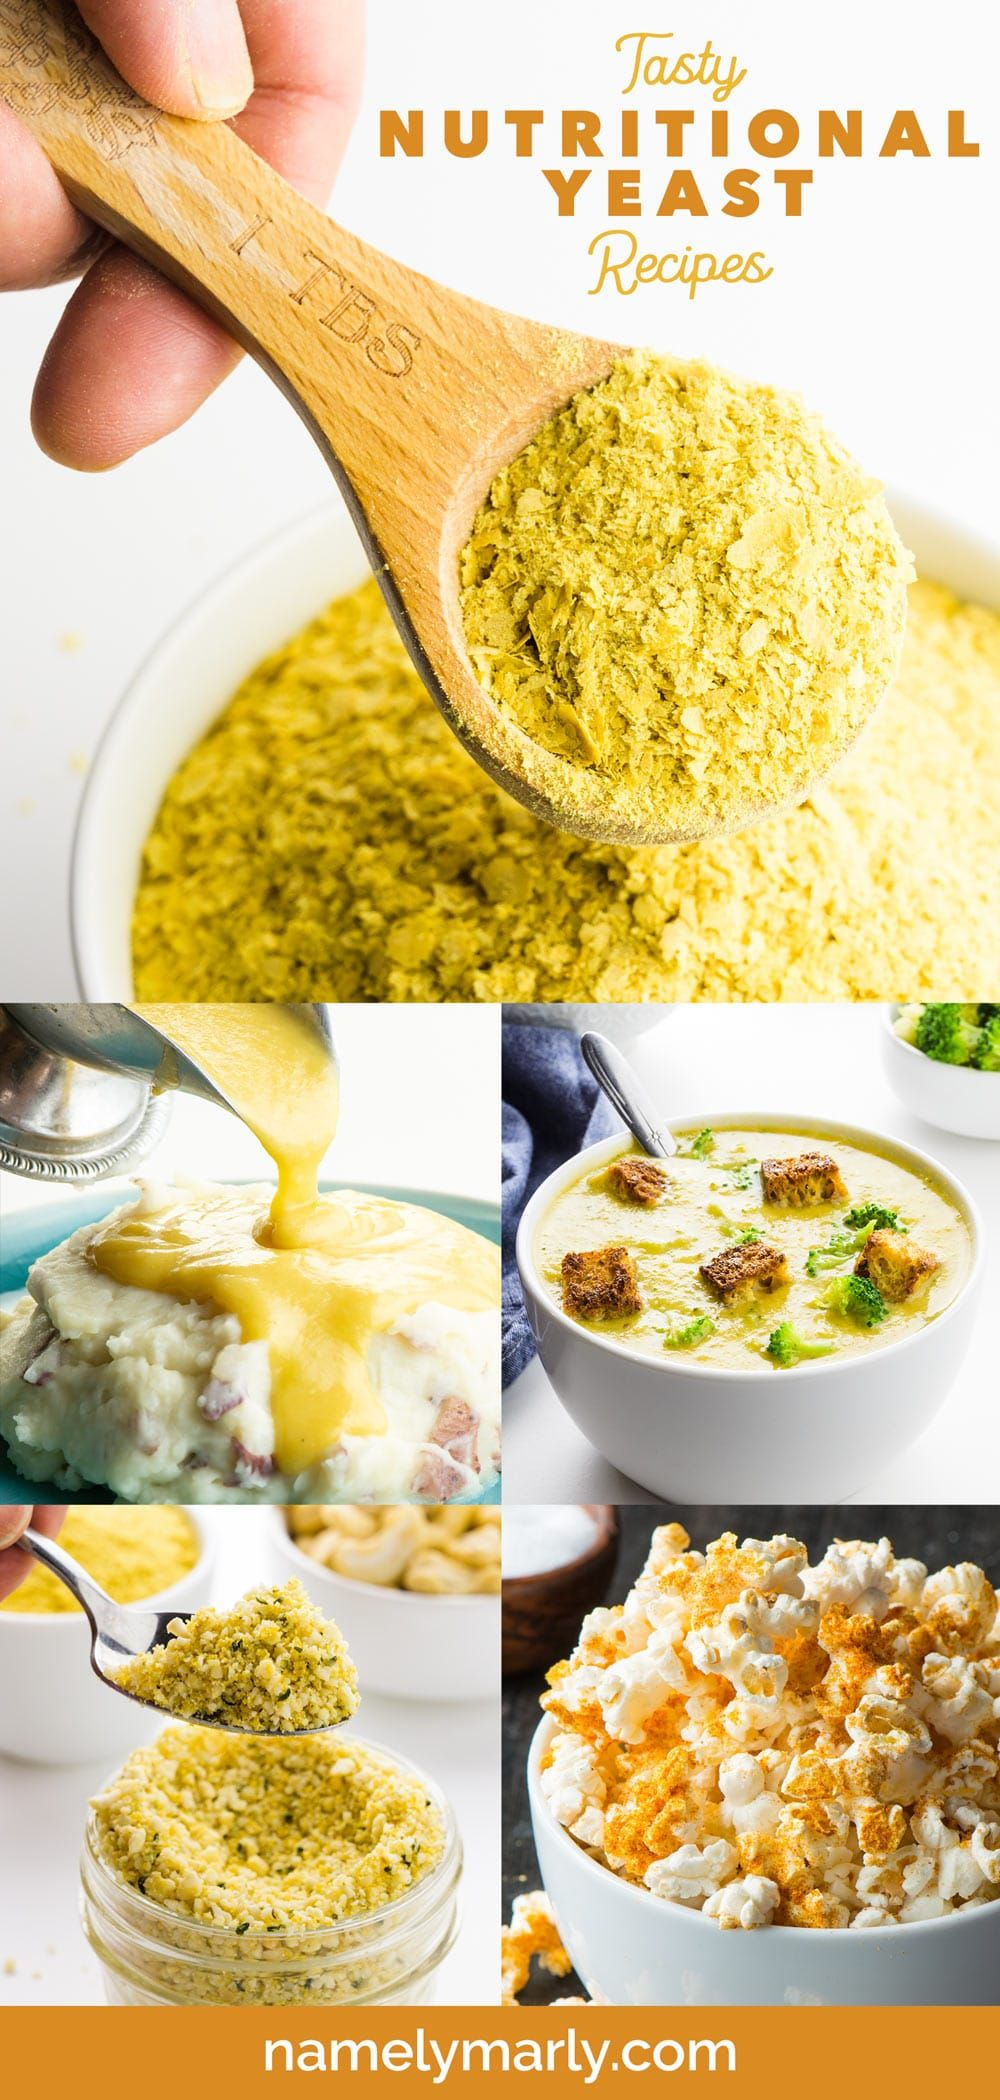 Nutritional Yeast Recipes In 2020 Nutritional Yeast Recipes Nutritional Yeast Benefits Nutritional Yeast